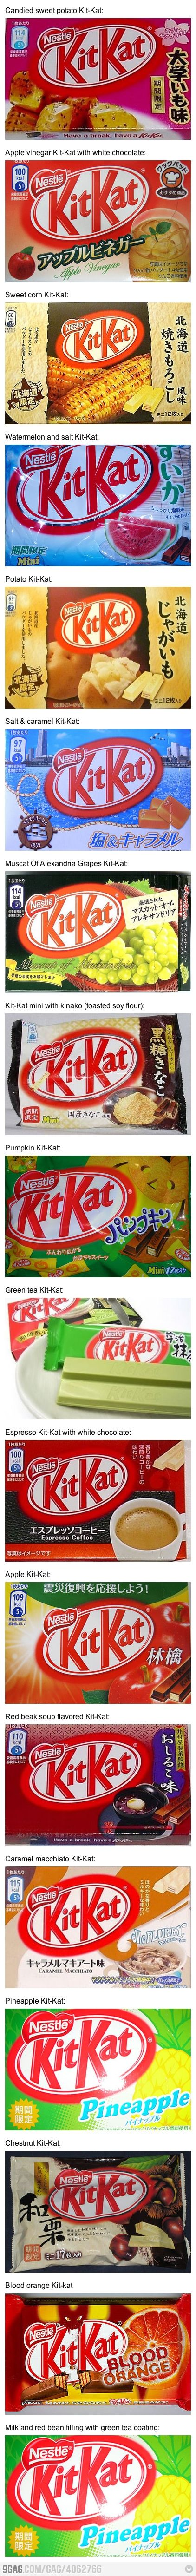 i've had cherry blossom, green tea, & wasabi kitkats when i've gone to japan... so many to try!